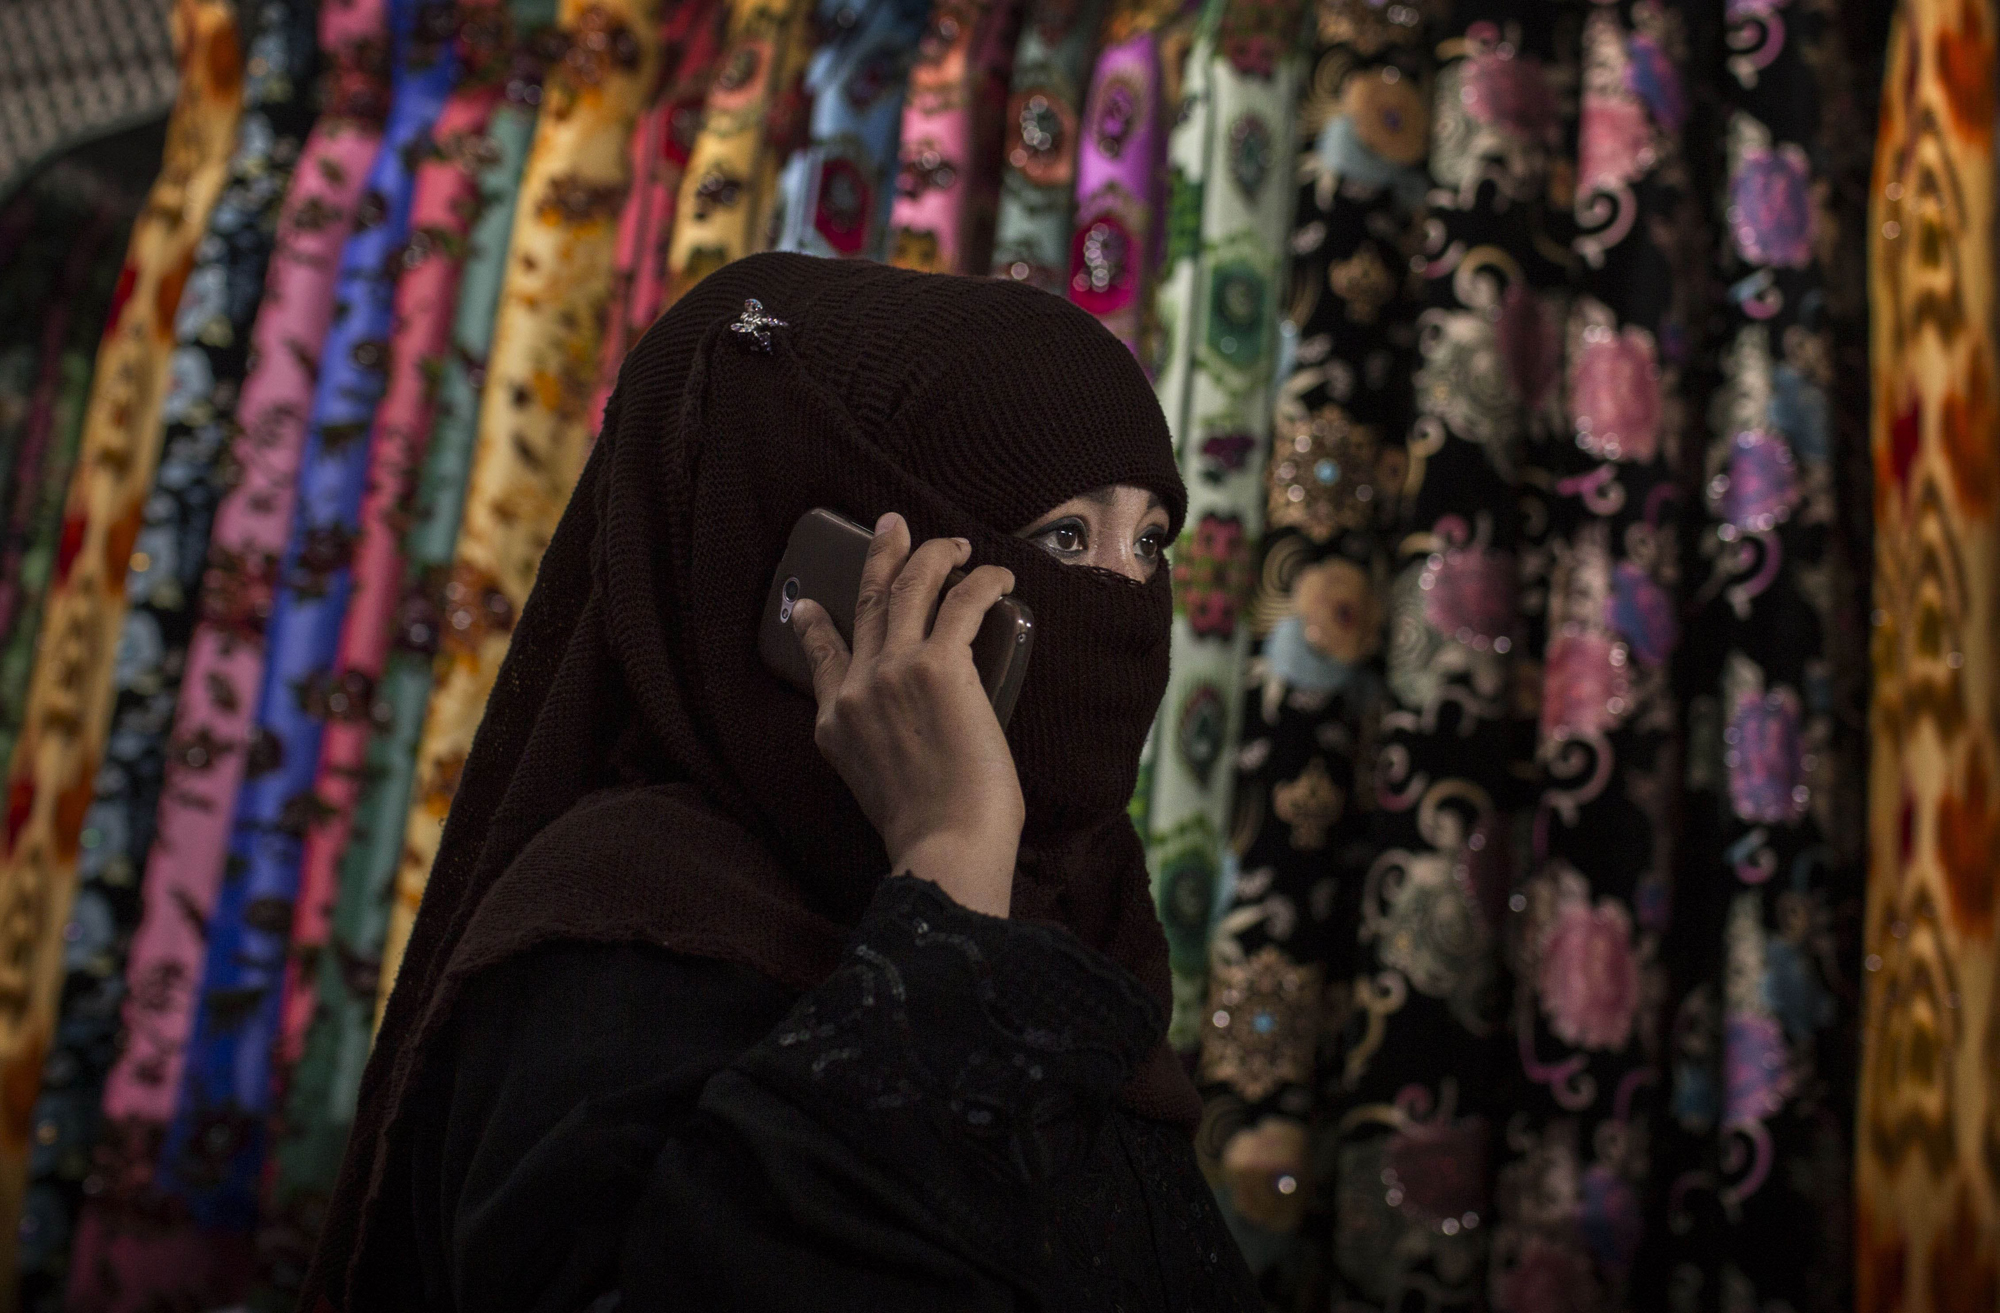 A Uighur woman wears a veil as she shops at a local market on August 2, 2014 in Kashgar.